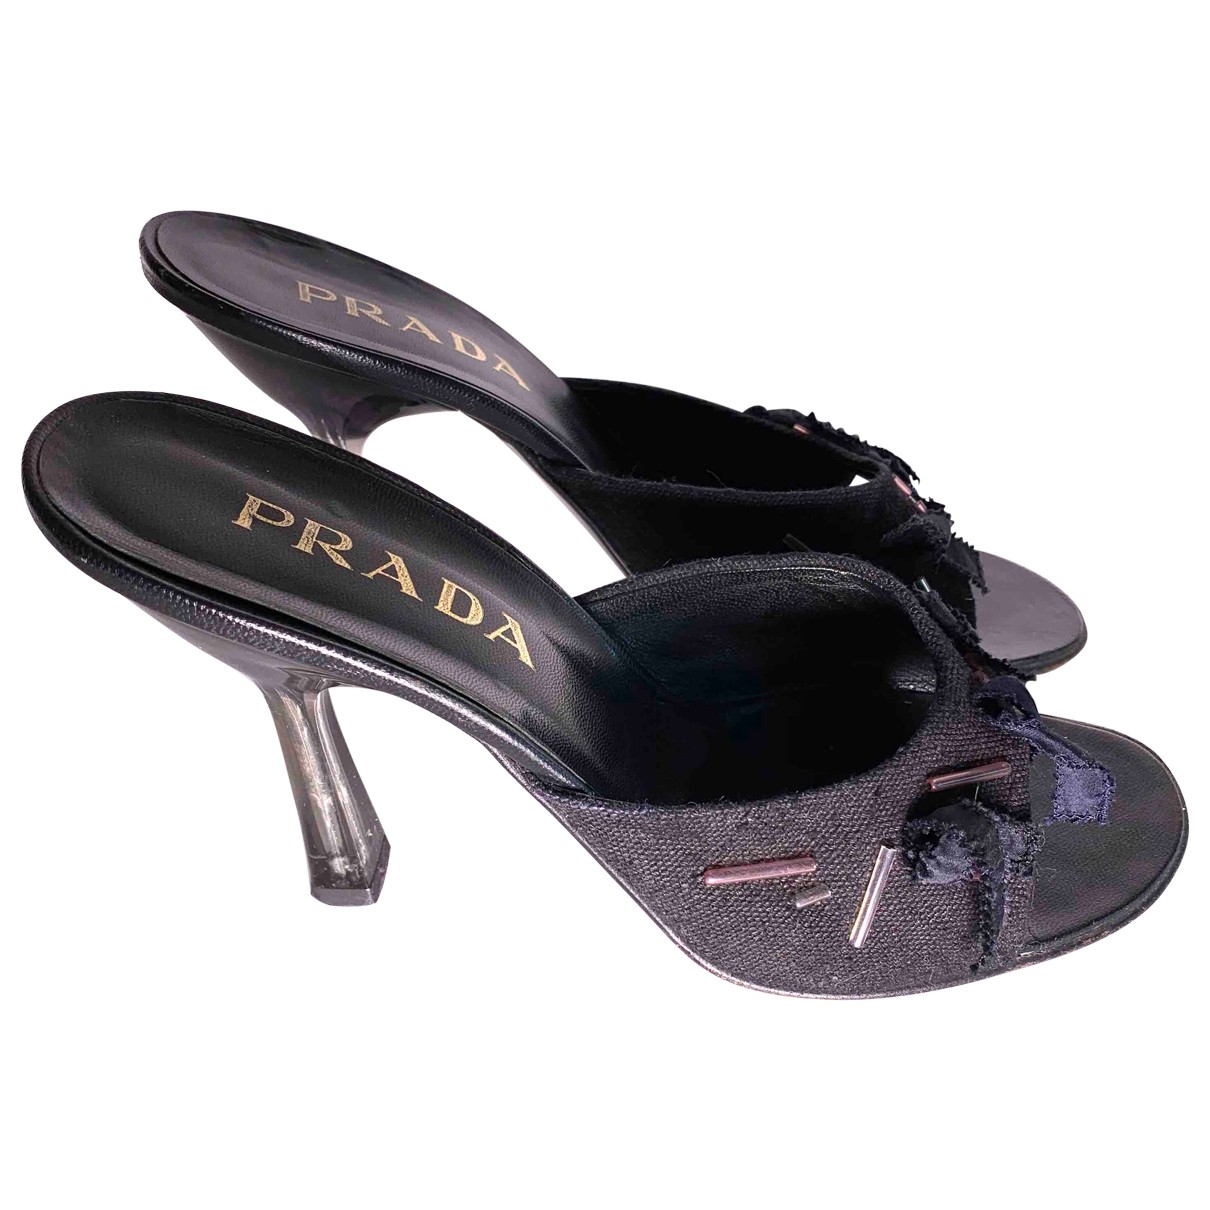 Prada \N Black Cloth Sandals for Women 41 EU